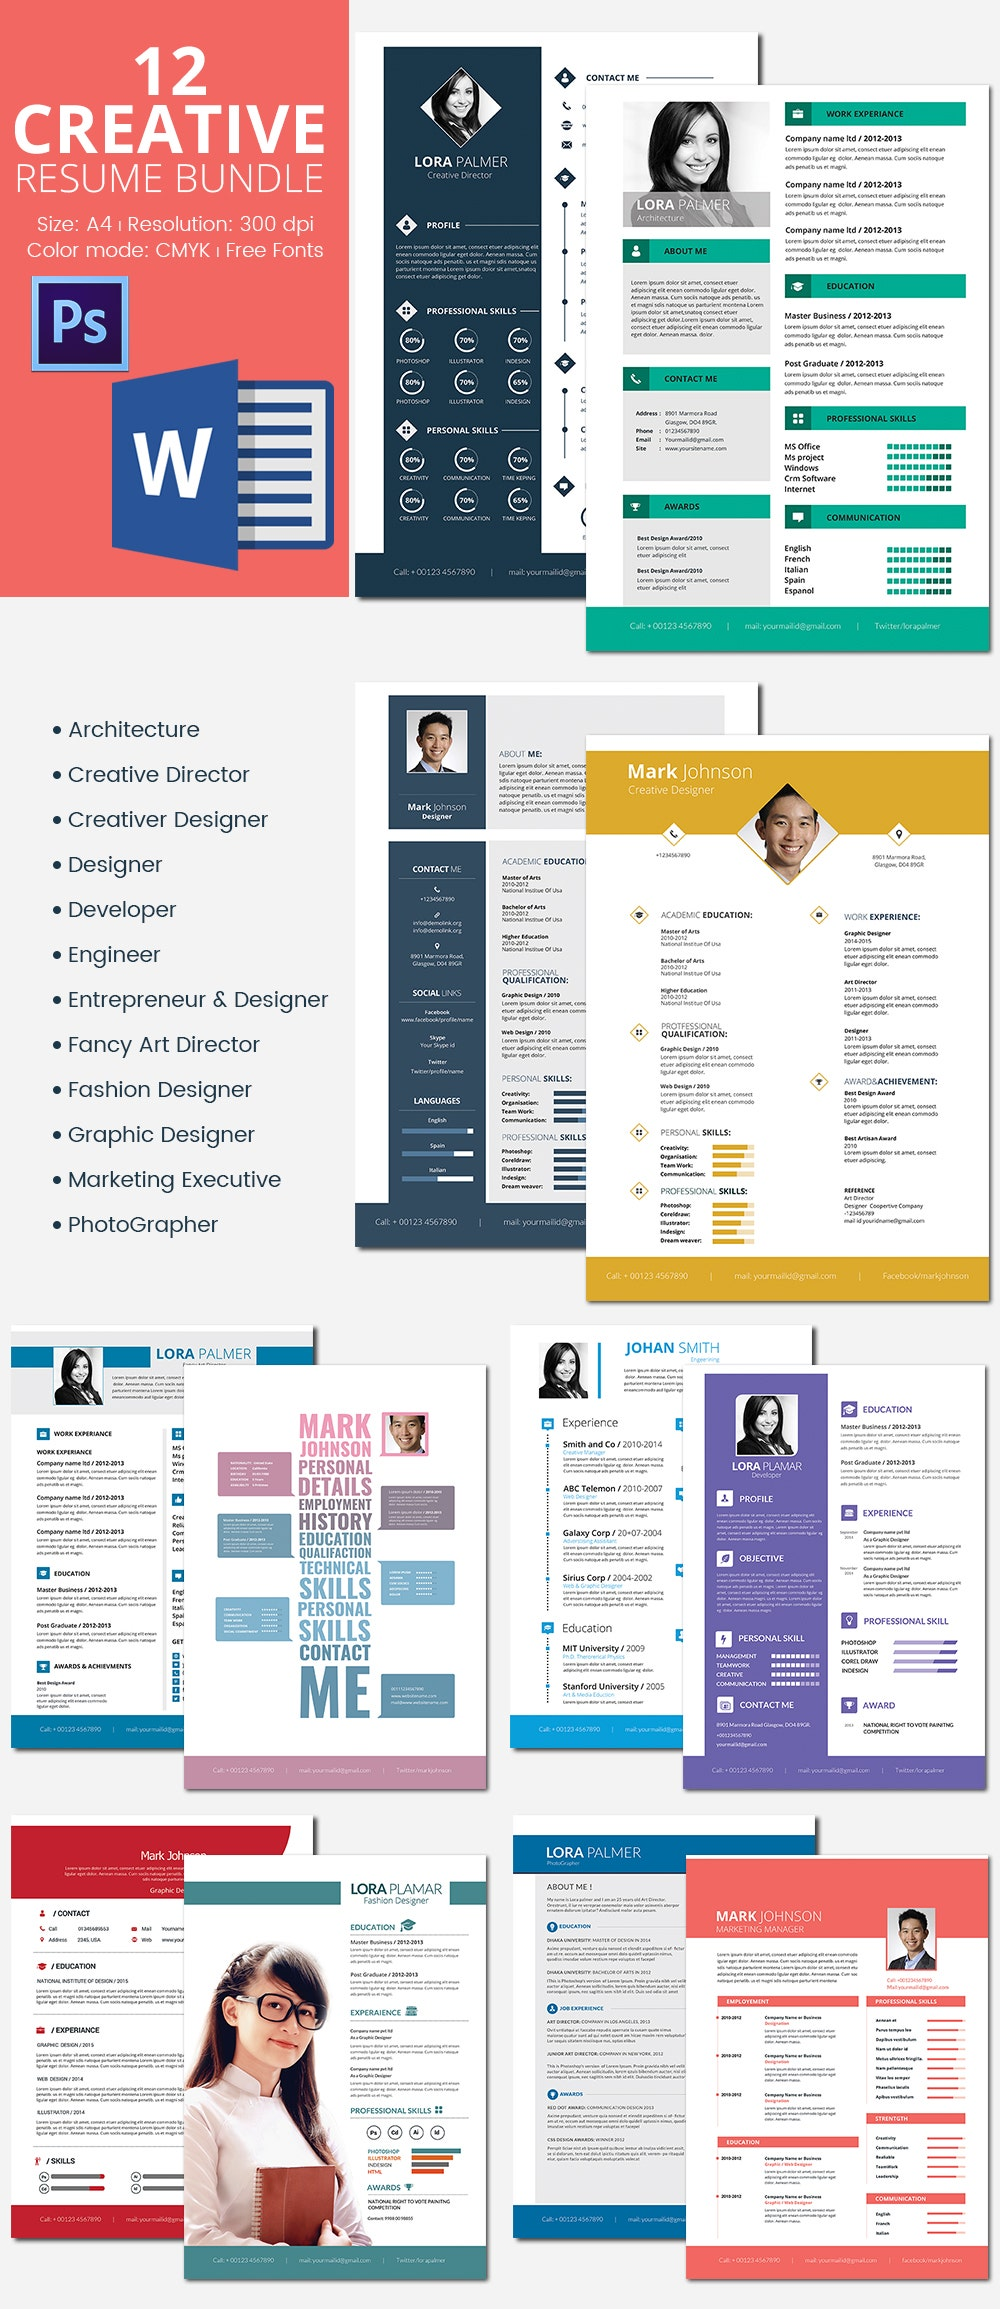 12 resume bundle templates - Resume Templates Download Free Word